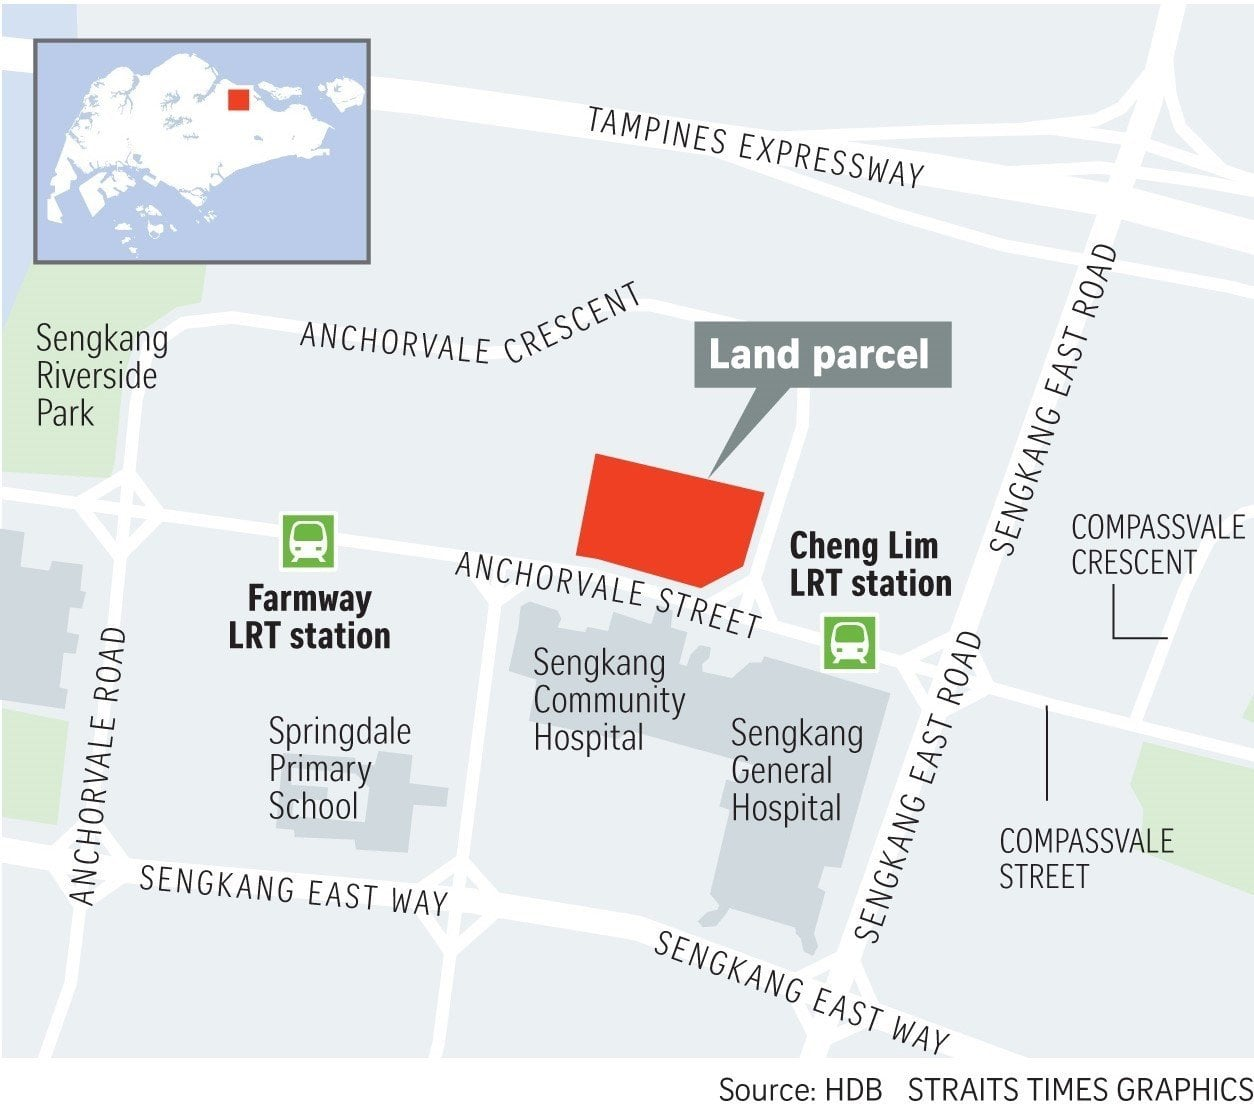 ola-ec-anchorvale-crescent-location map